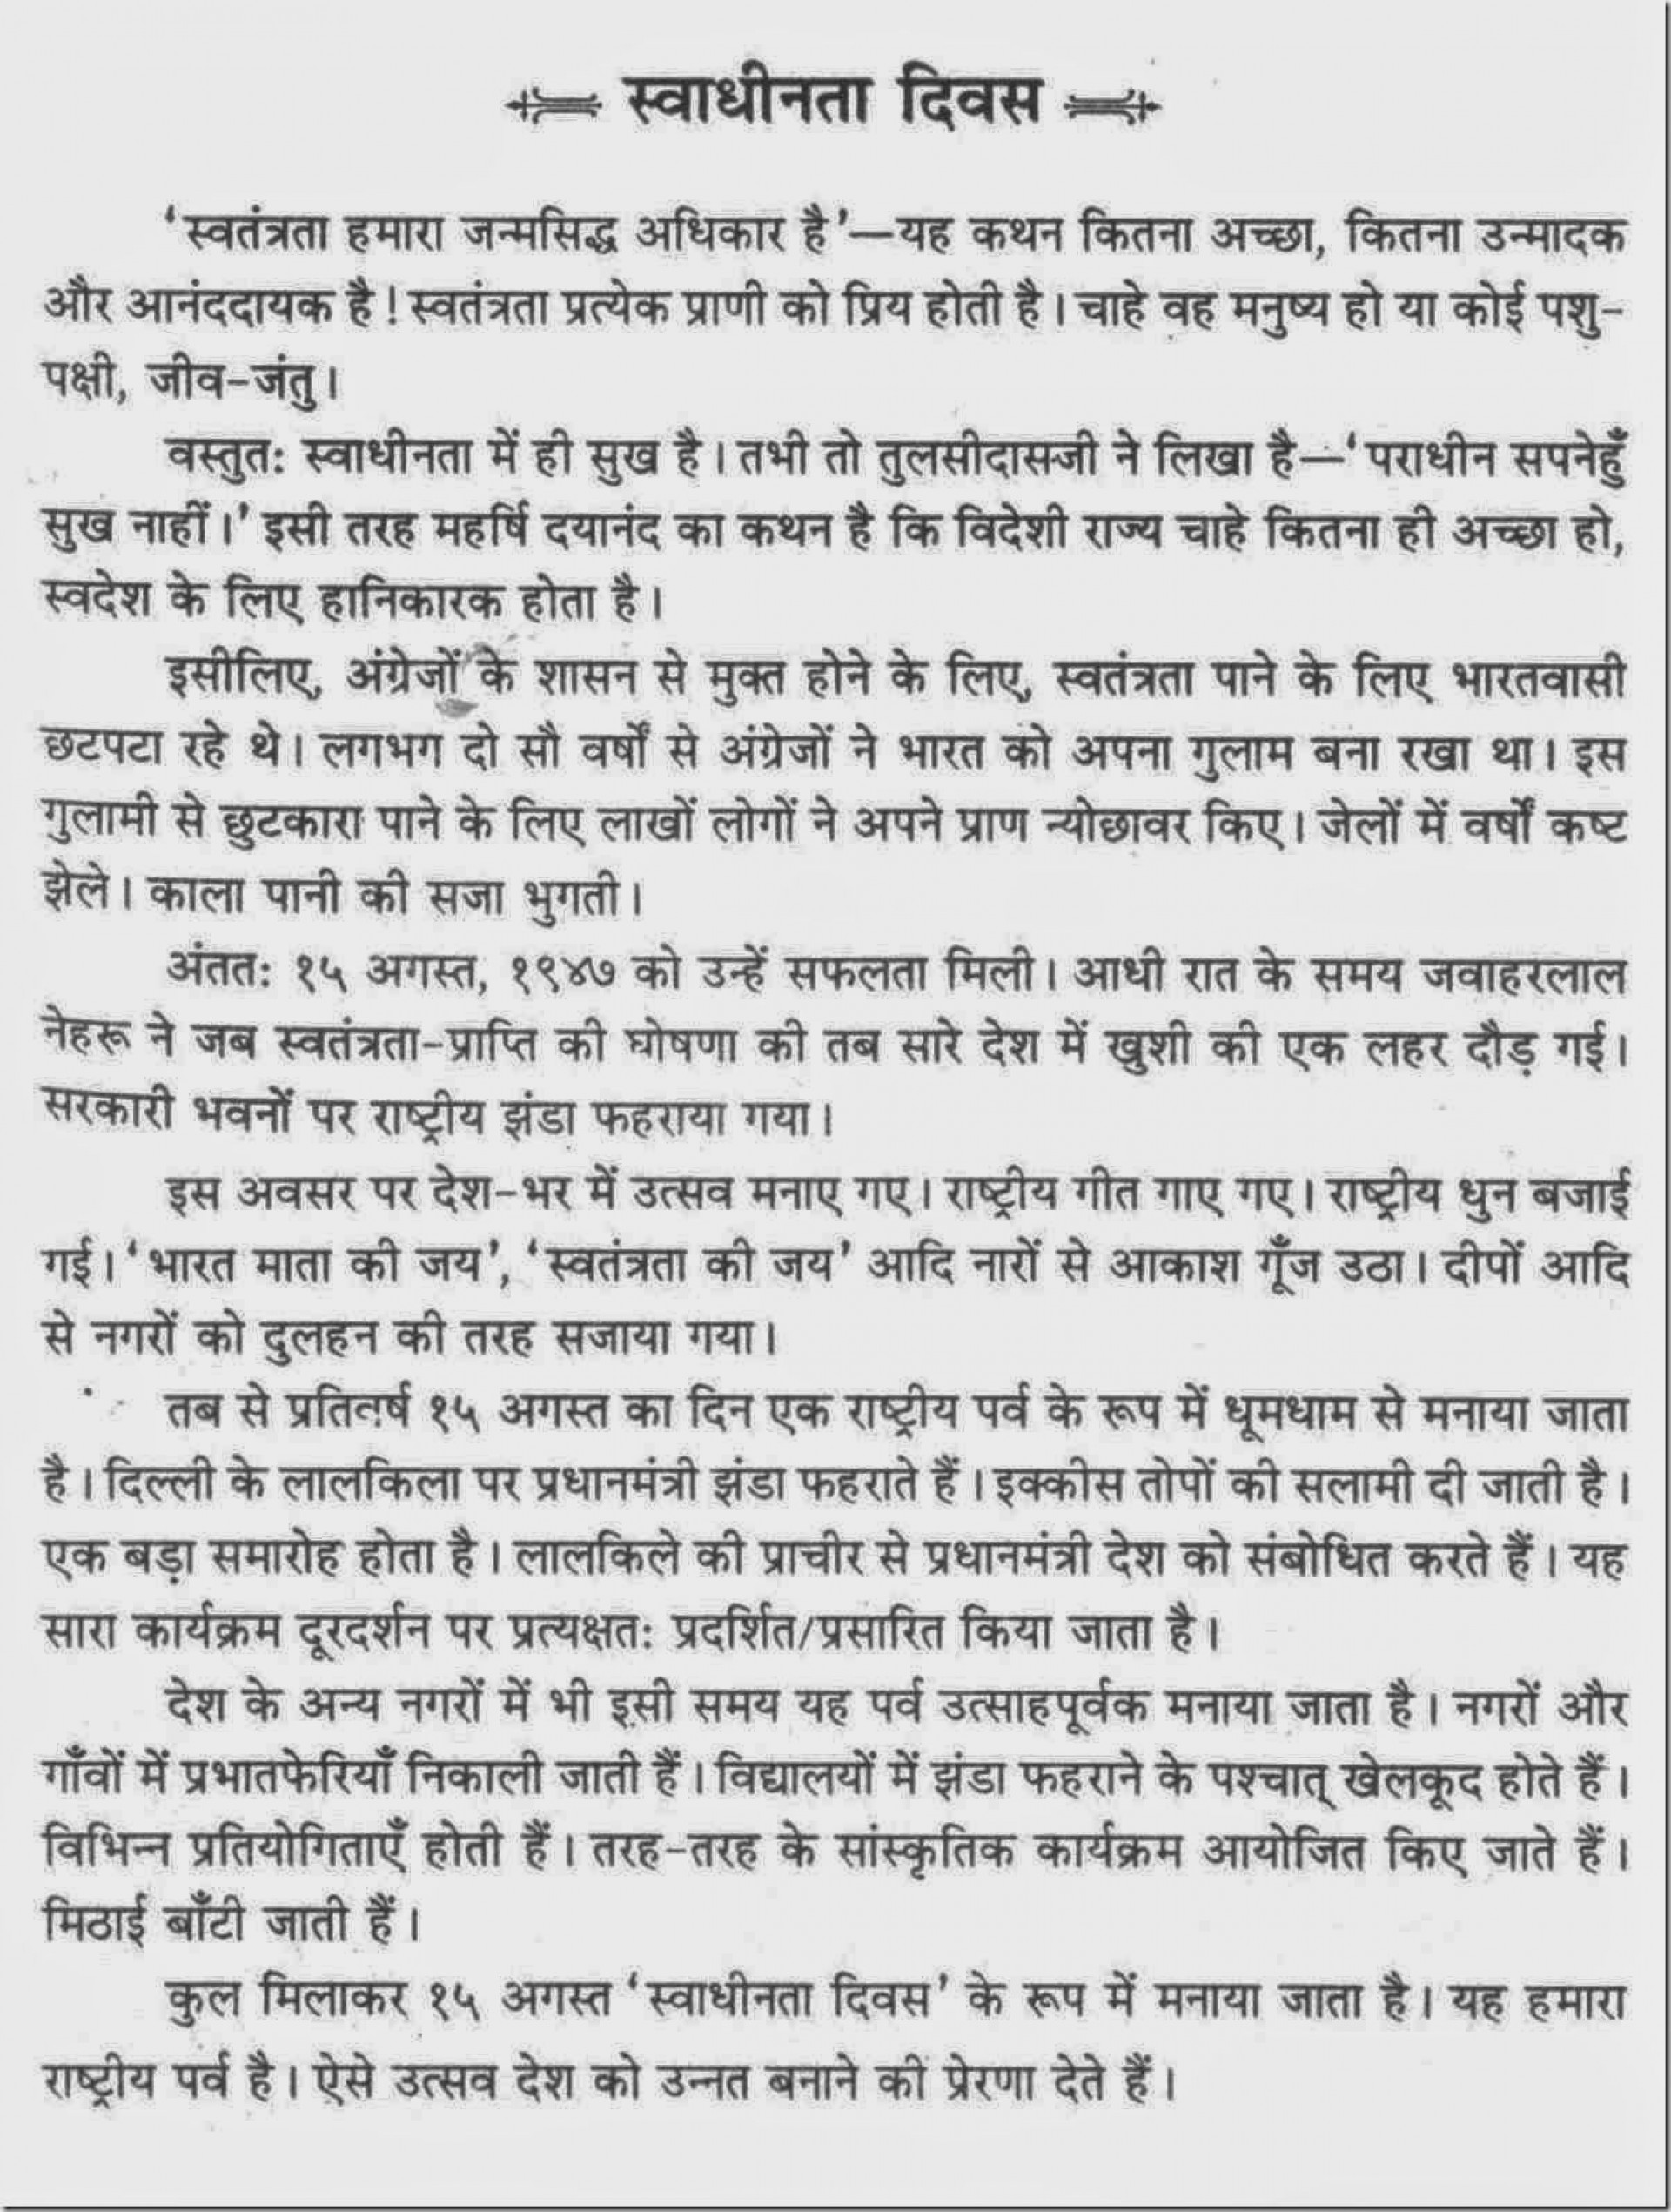 016 My Country Essay In Hindi Phenomenal 10 Lines Is Great 1920